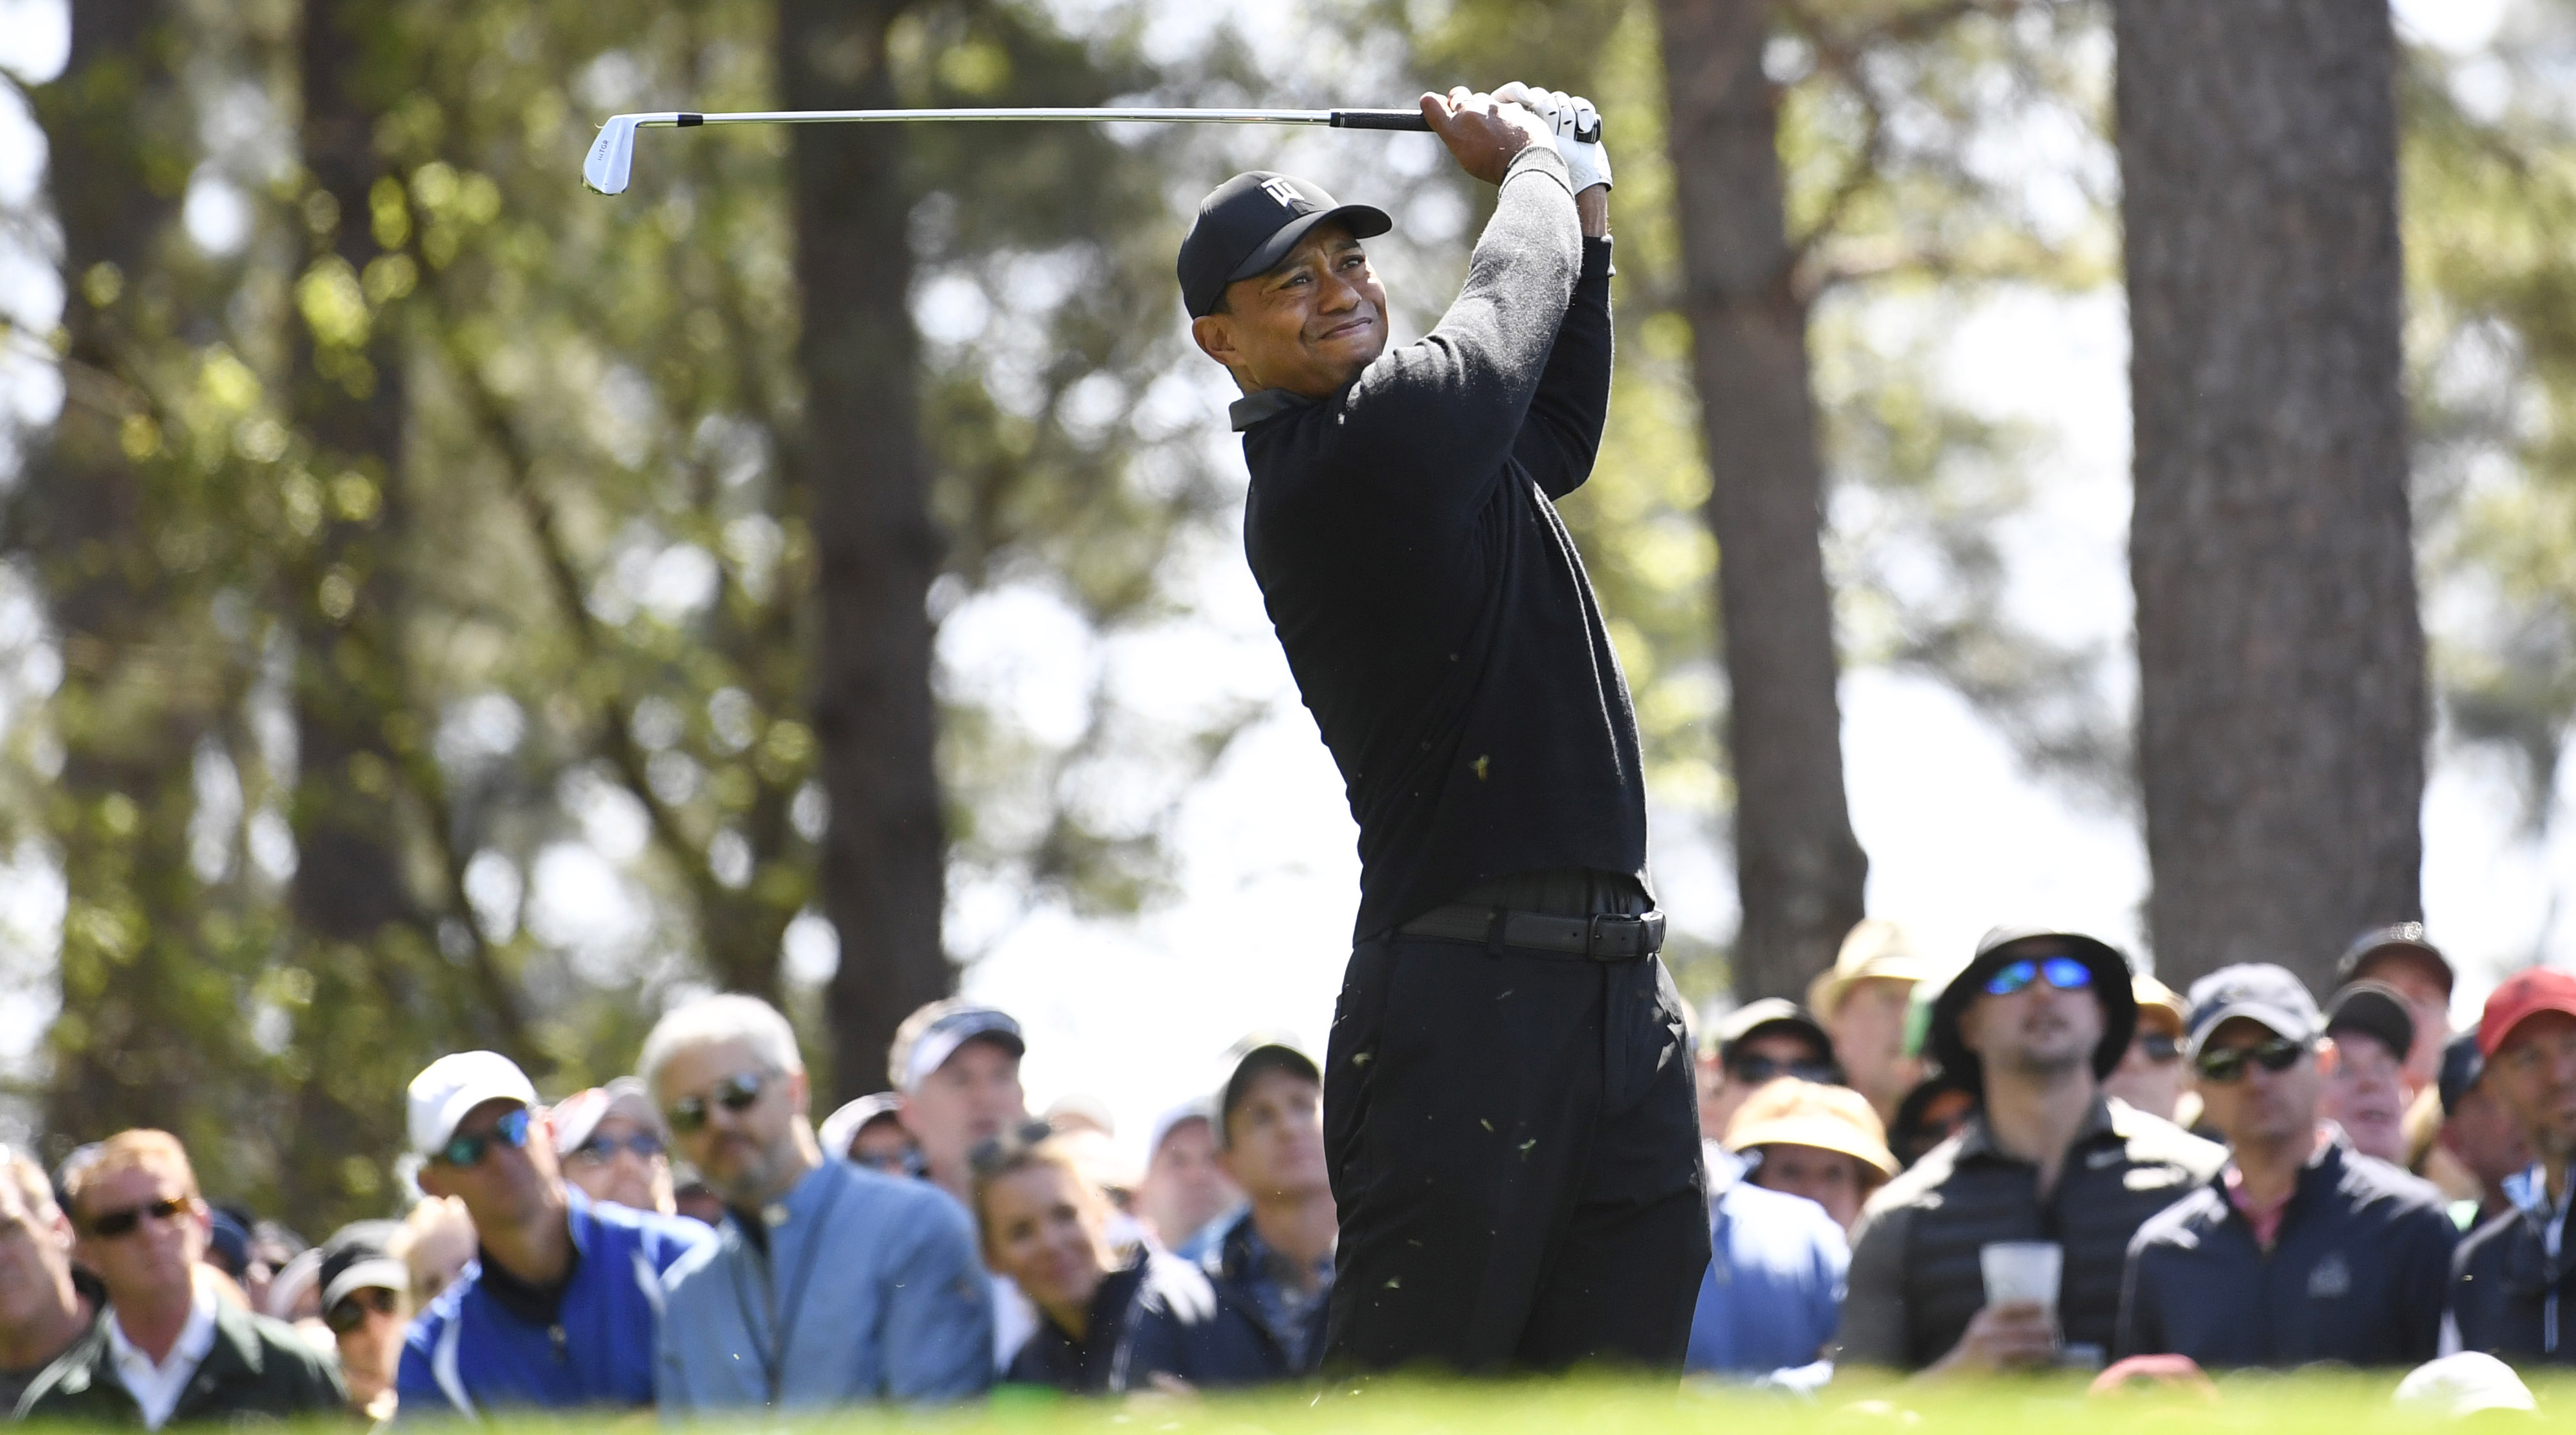 f7bcb993 2019 Masters predictions: Tiger tops 10 golfers with most at stake | SI.com